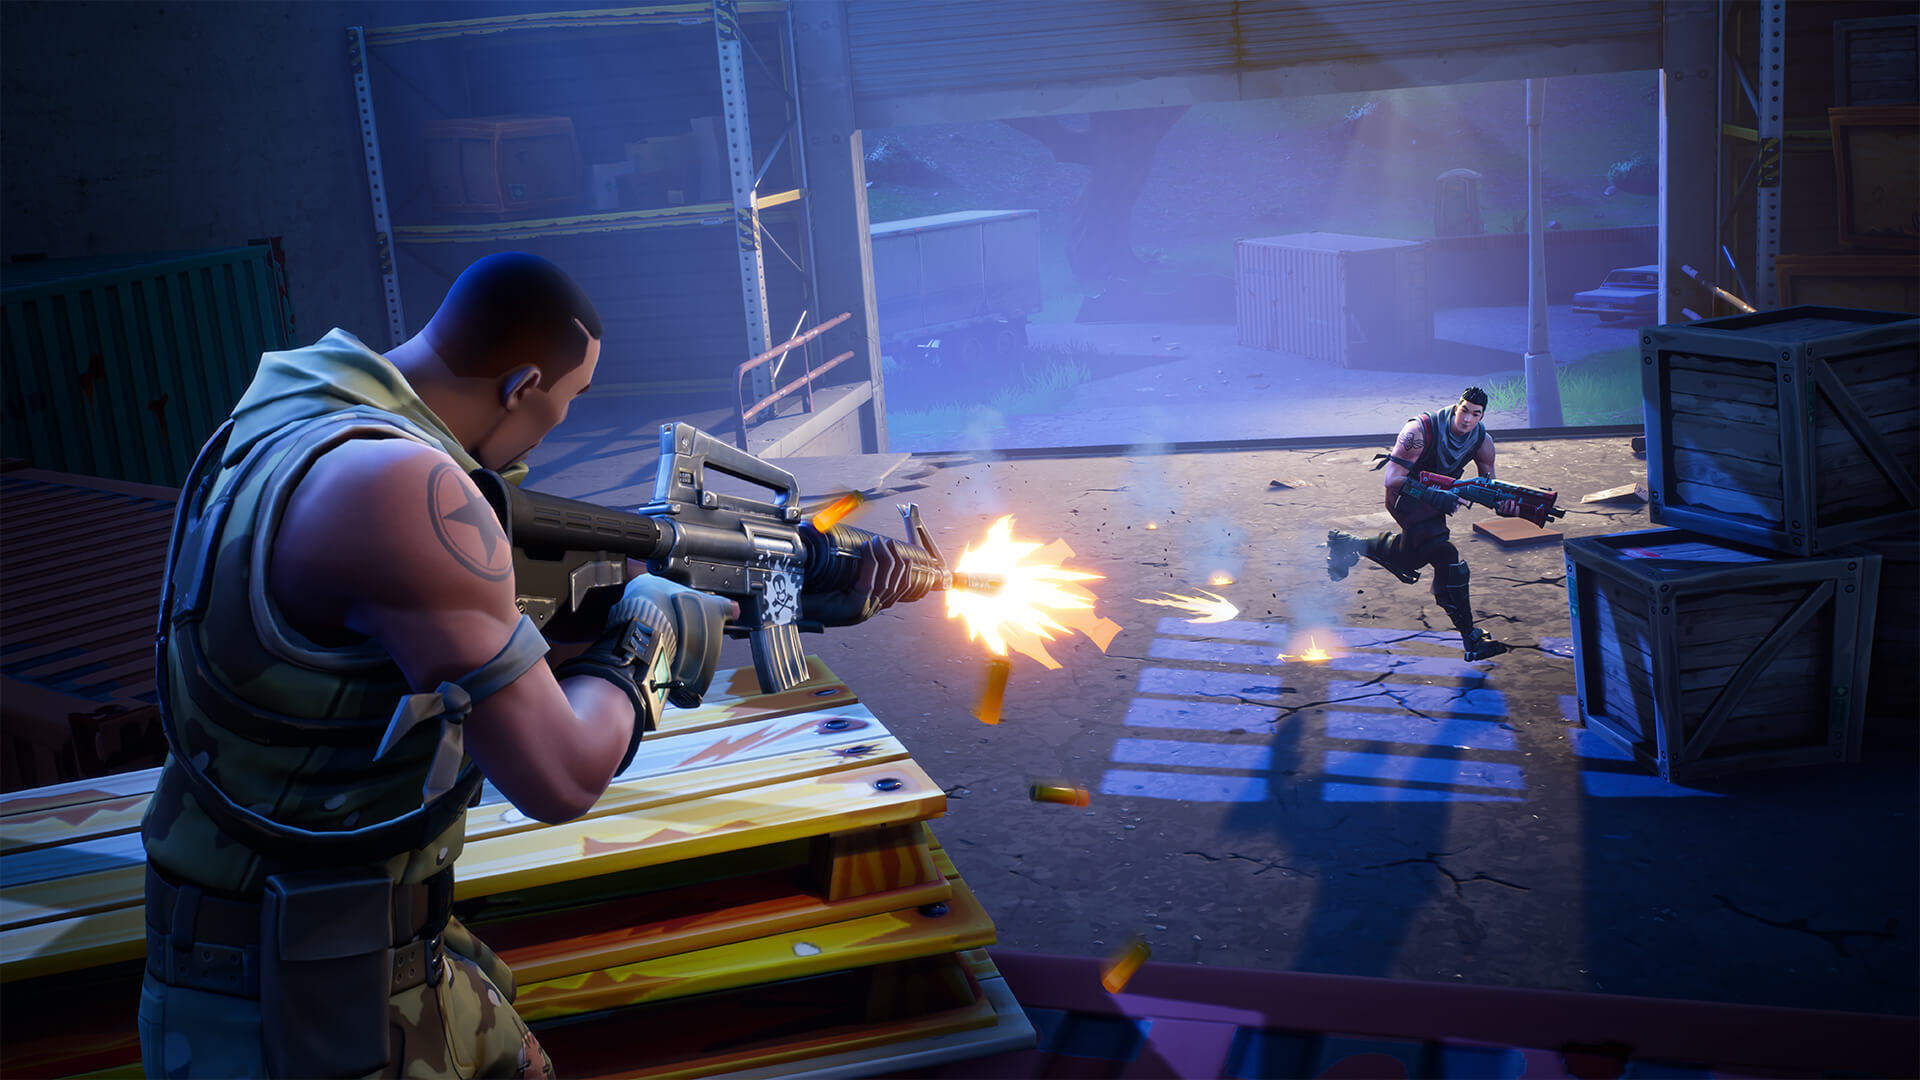 Fortnite Earns $25 Million in Less Than a Month on iOS